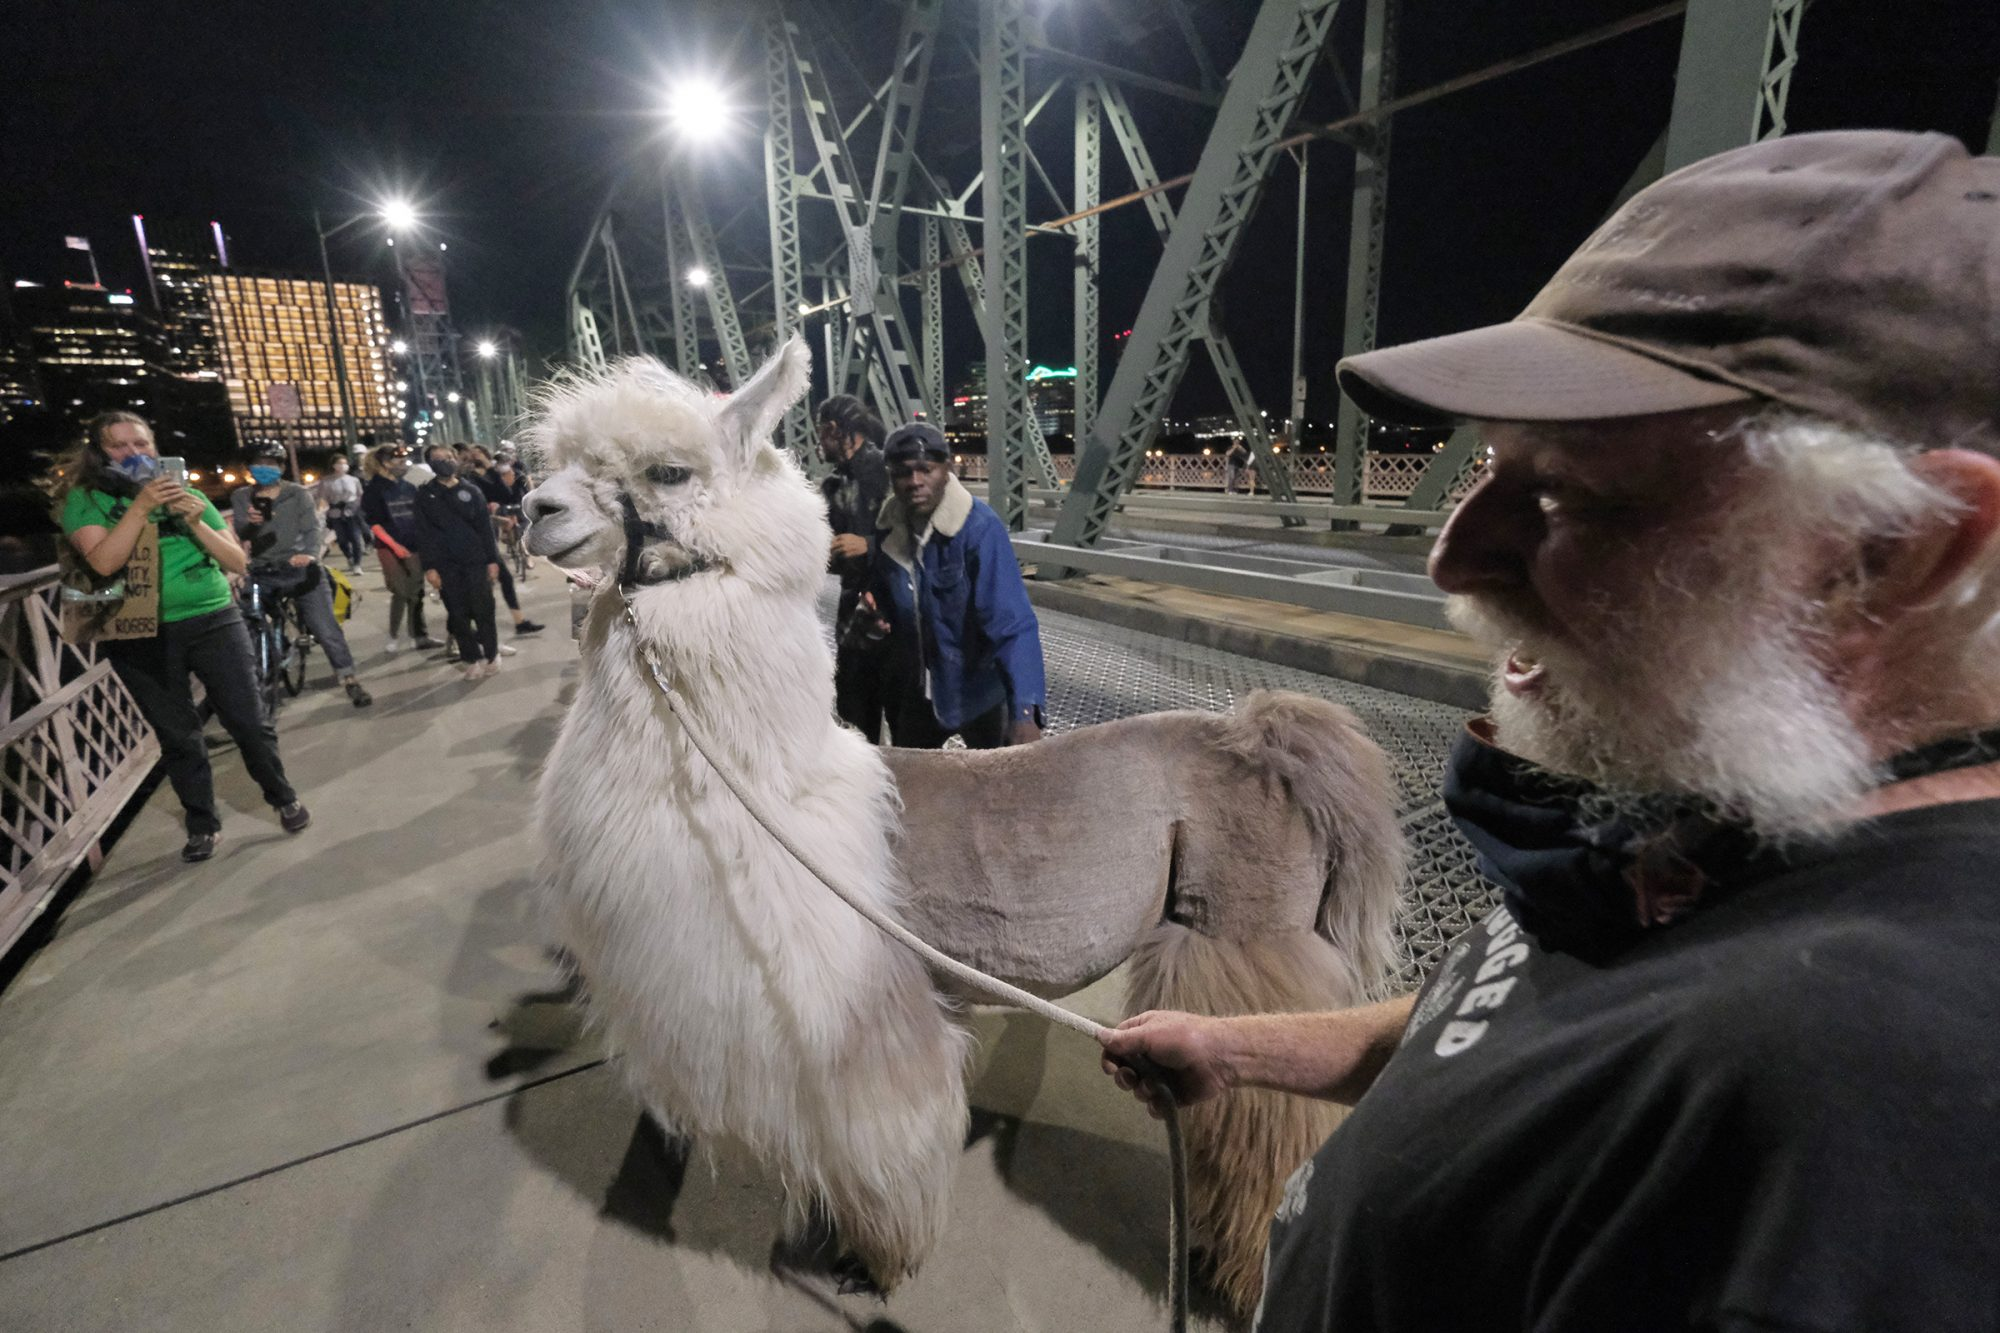 Caesar the no drama llama is followed by fans as he leaves the protest over the Hawthorne Bridge in Portland, Ore., on July 25, 2020